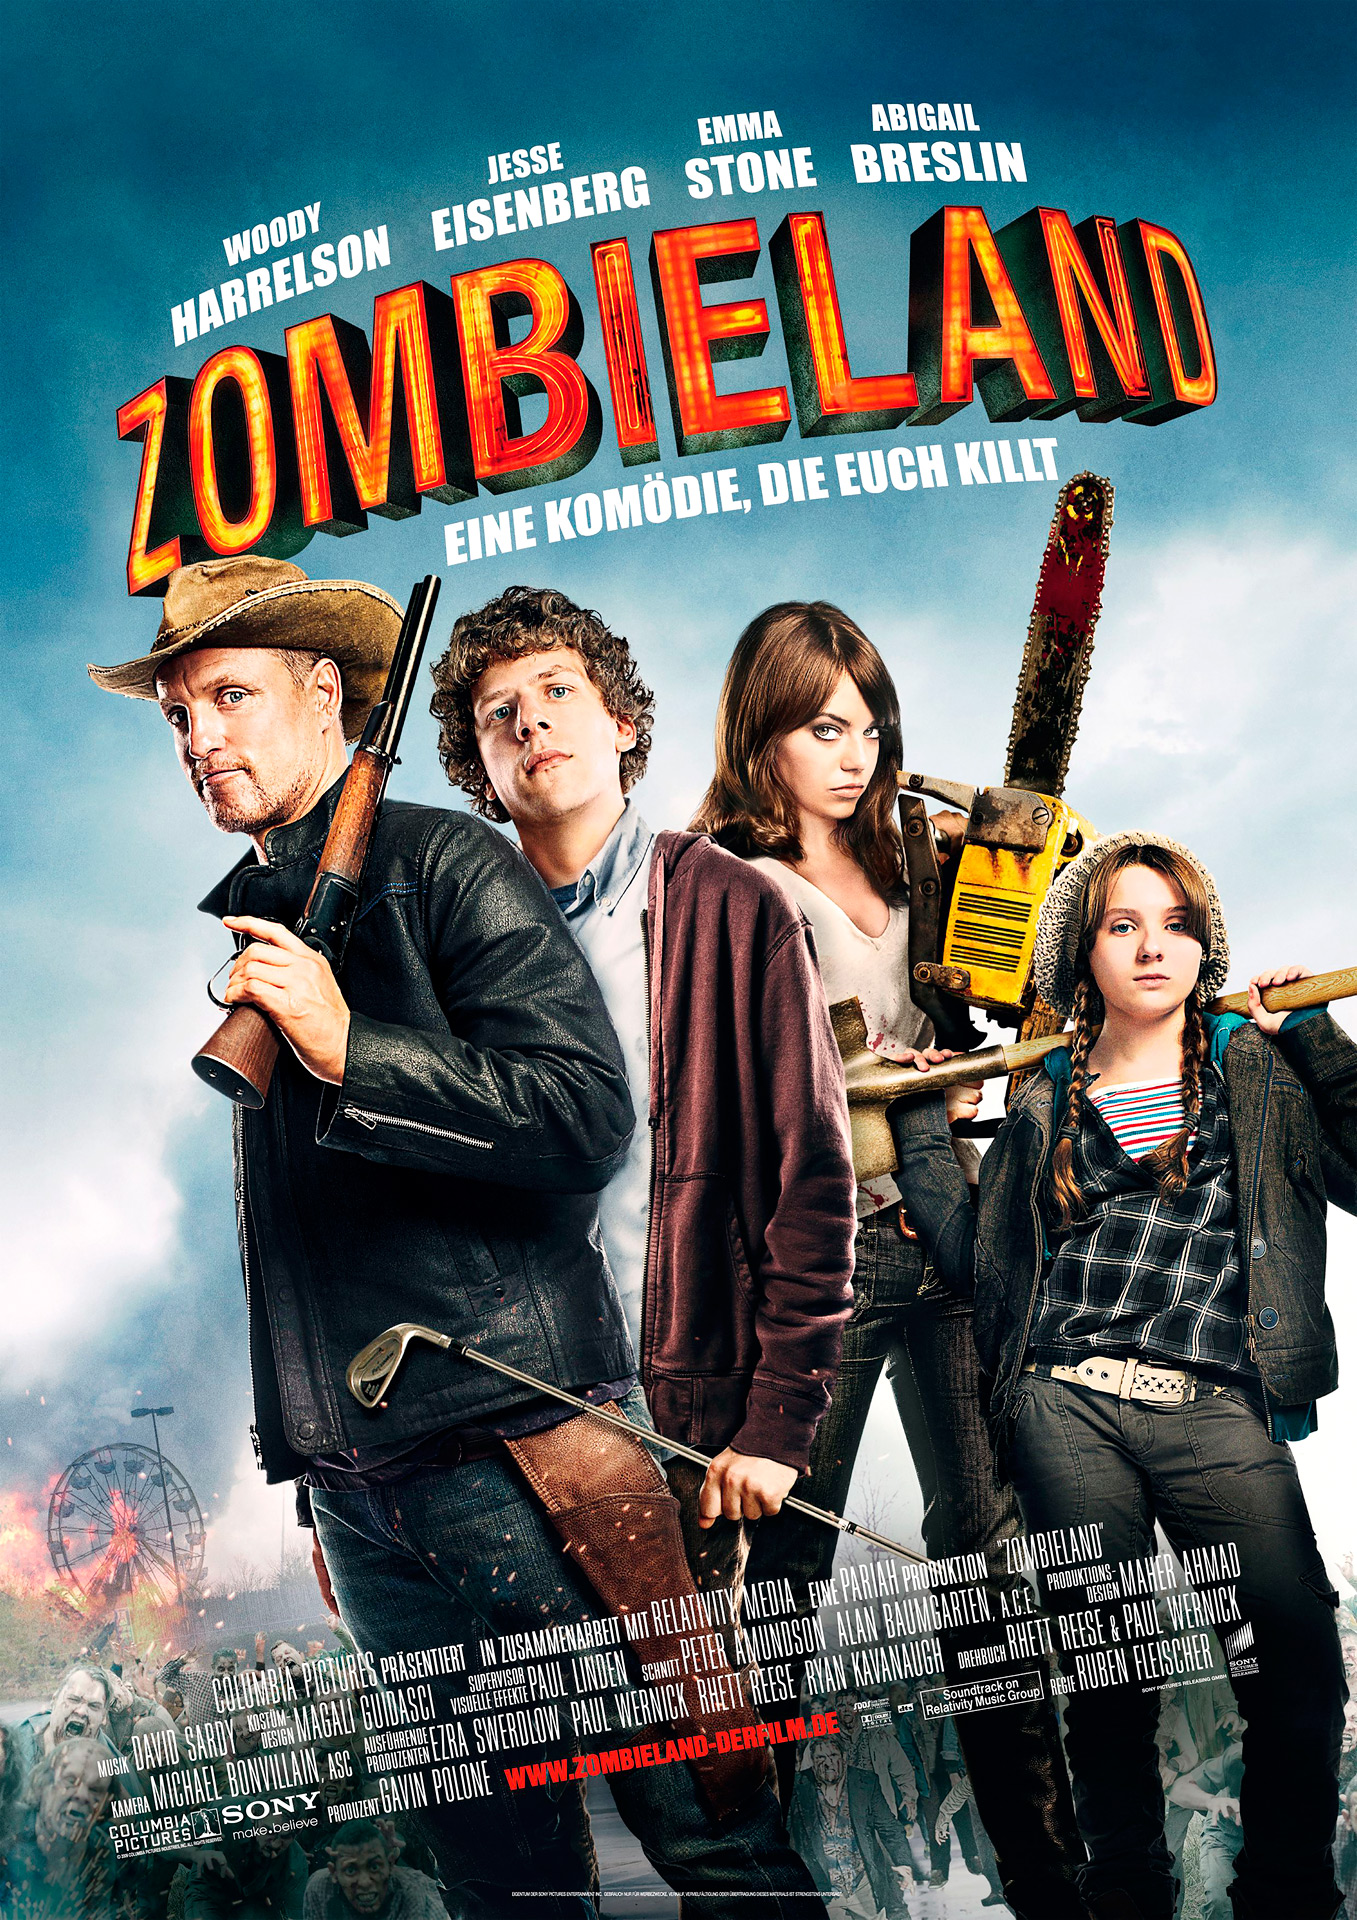 Take a road trip for your life in 'Zombieland' | SCAD.edu